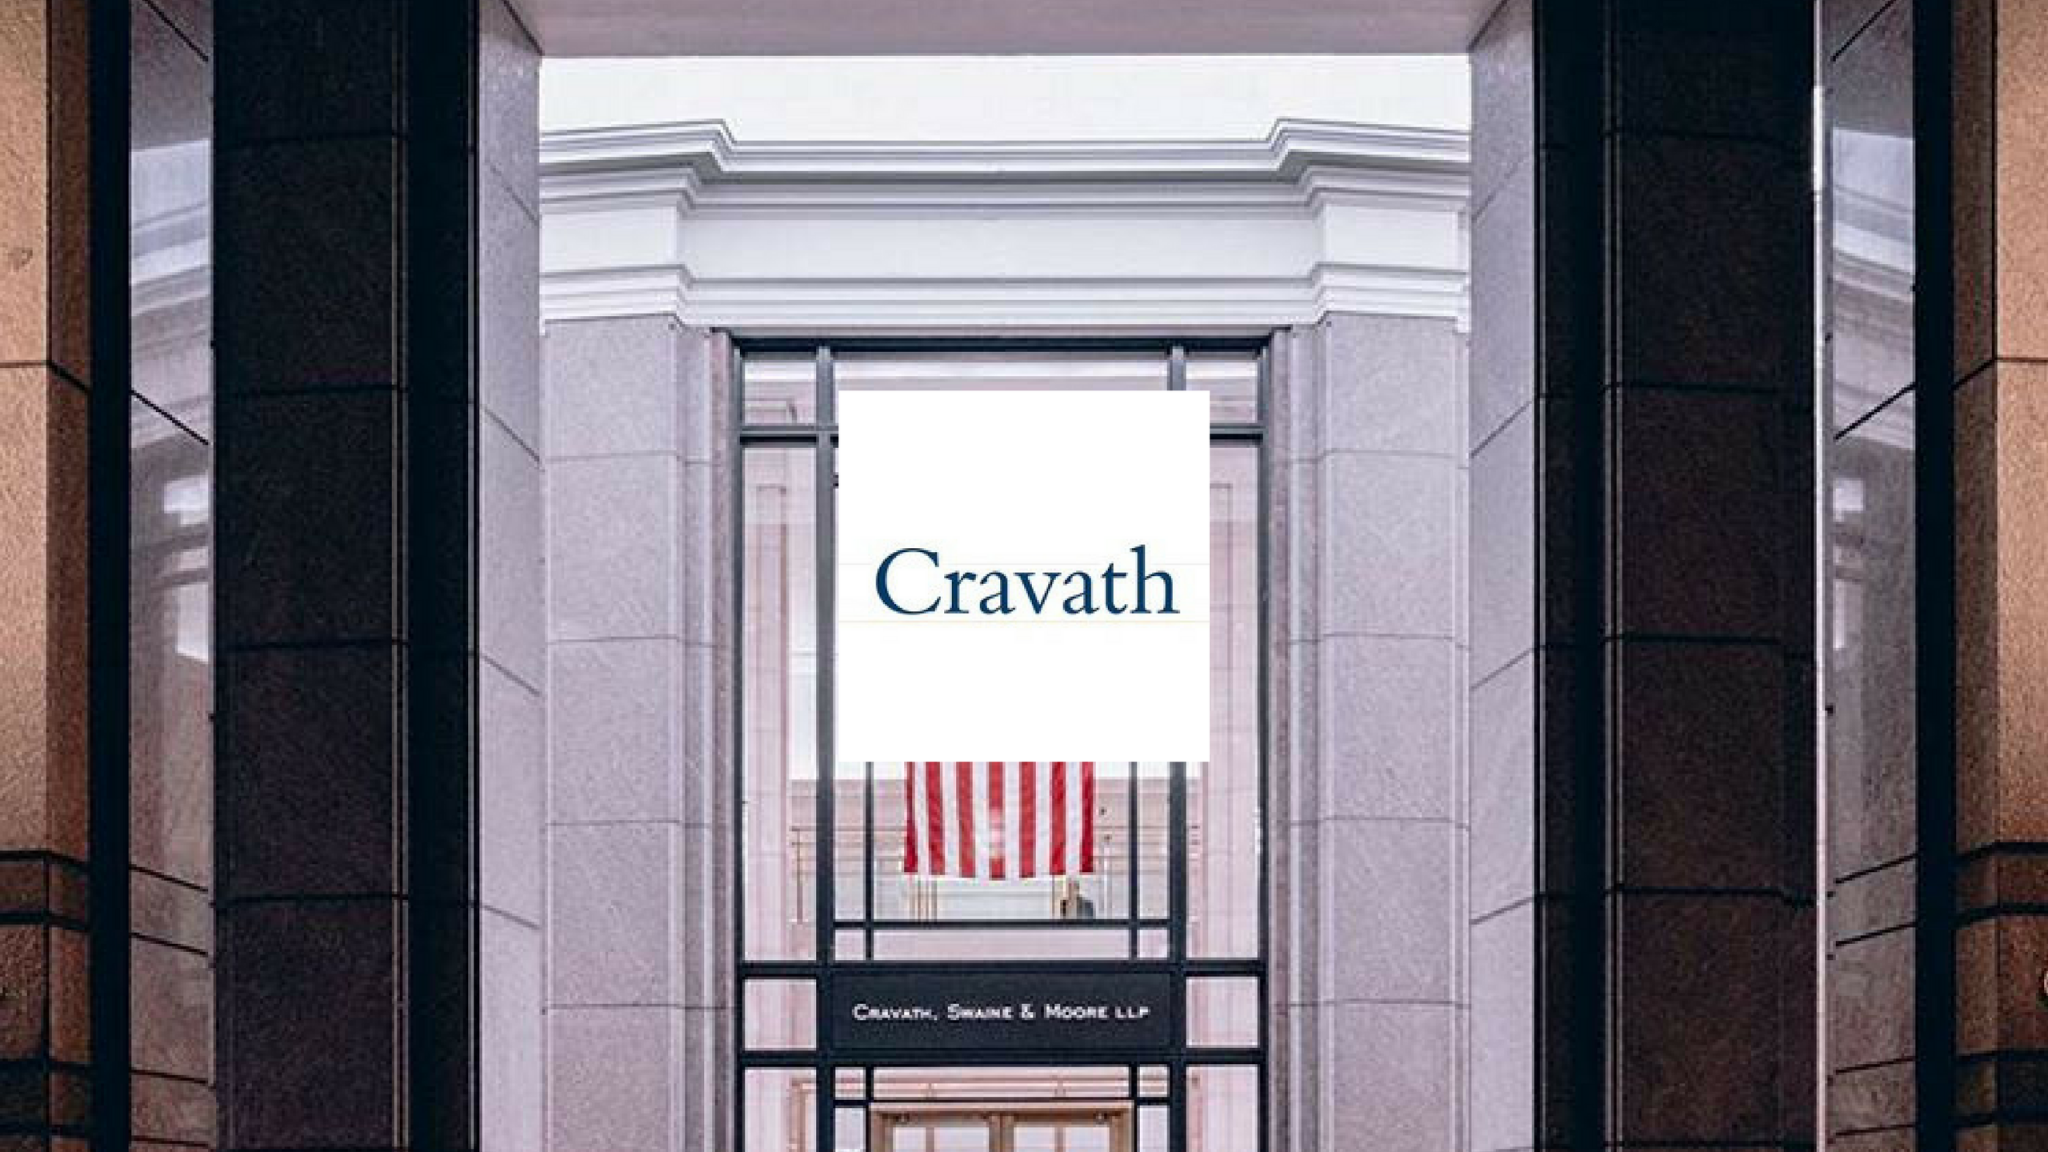 Cravath Swaine & Moore Best Legal and Law Firms in the World UpSlide